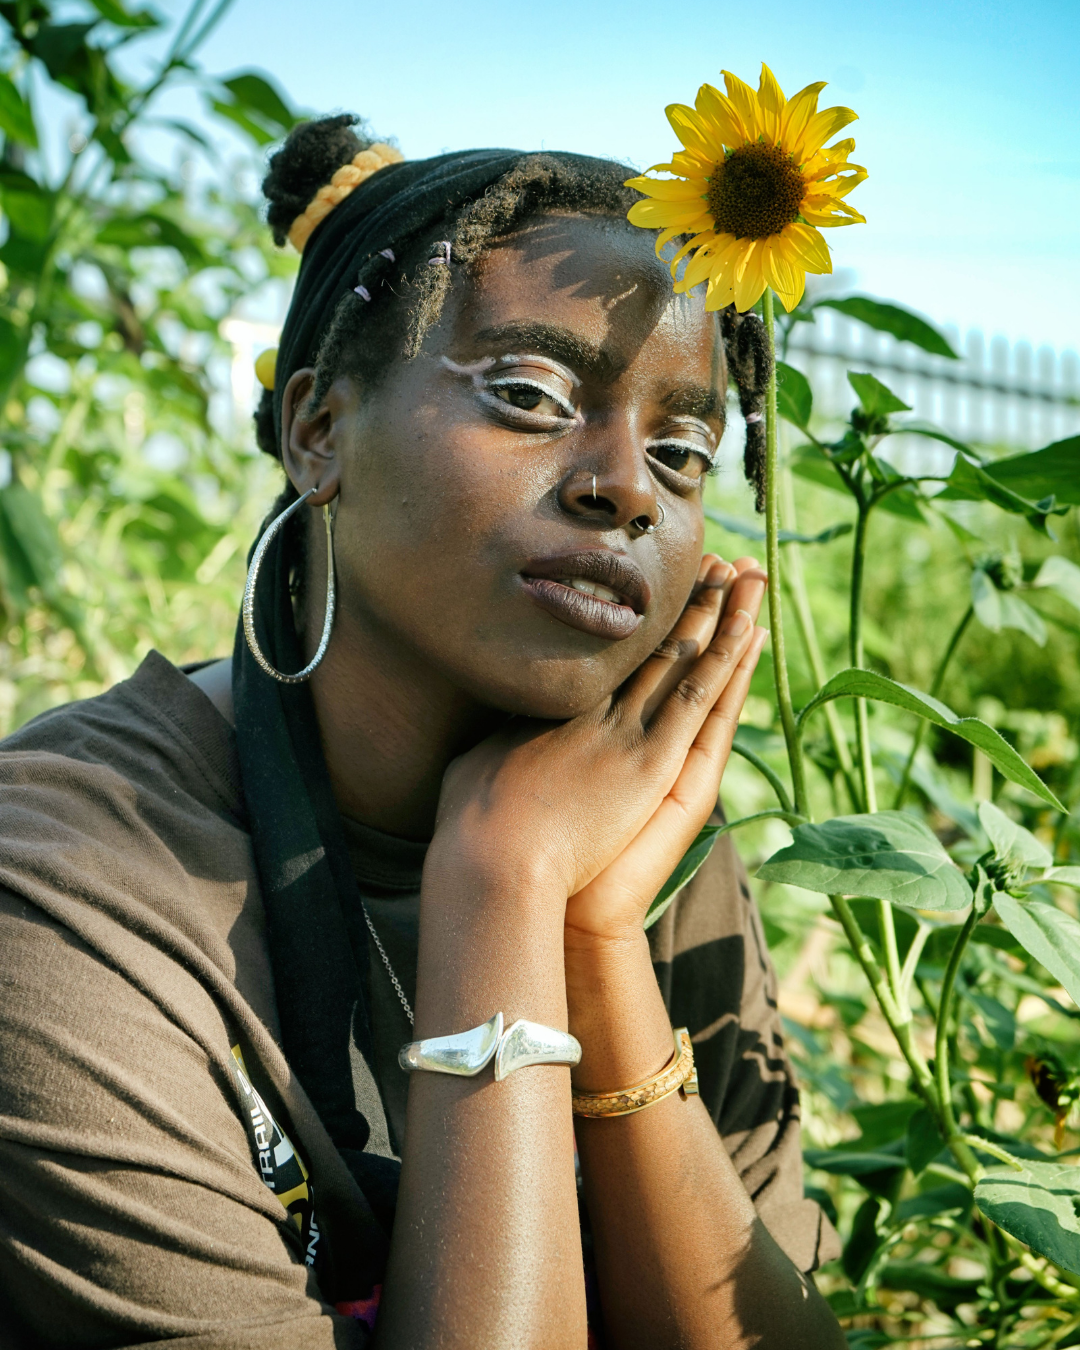 Portrait of Alajia Mc Kizia in a garden her hands near her face sitting next to a sunflower